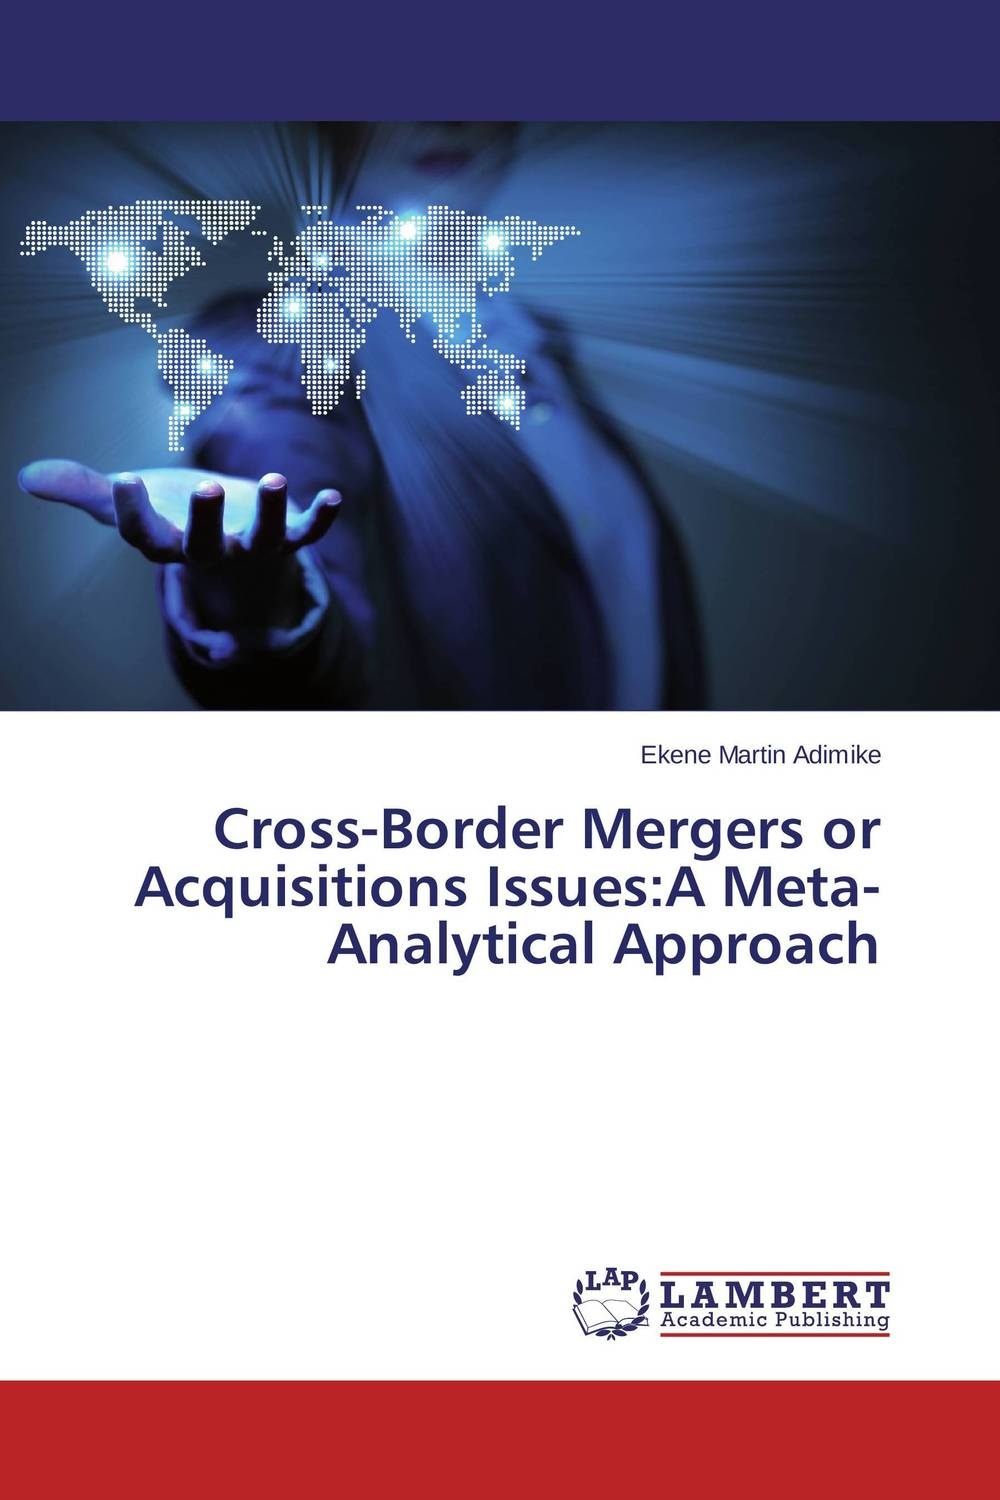 Cross-Border Mergers or Acquisitions Issues:A Meta-Analytical Approach laurens j van mourik the process of cross border entrepreneurship